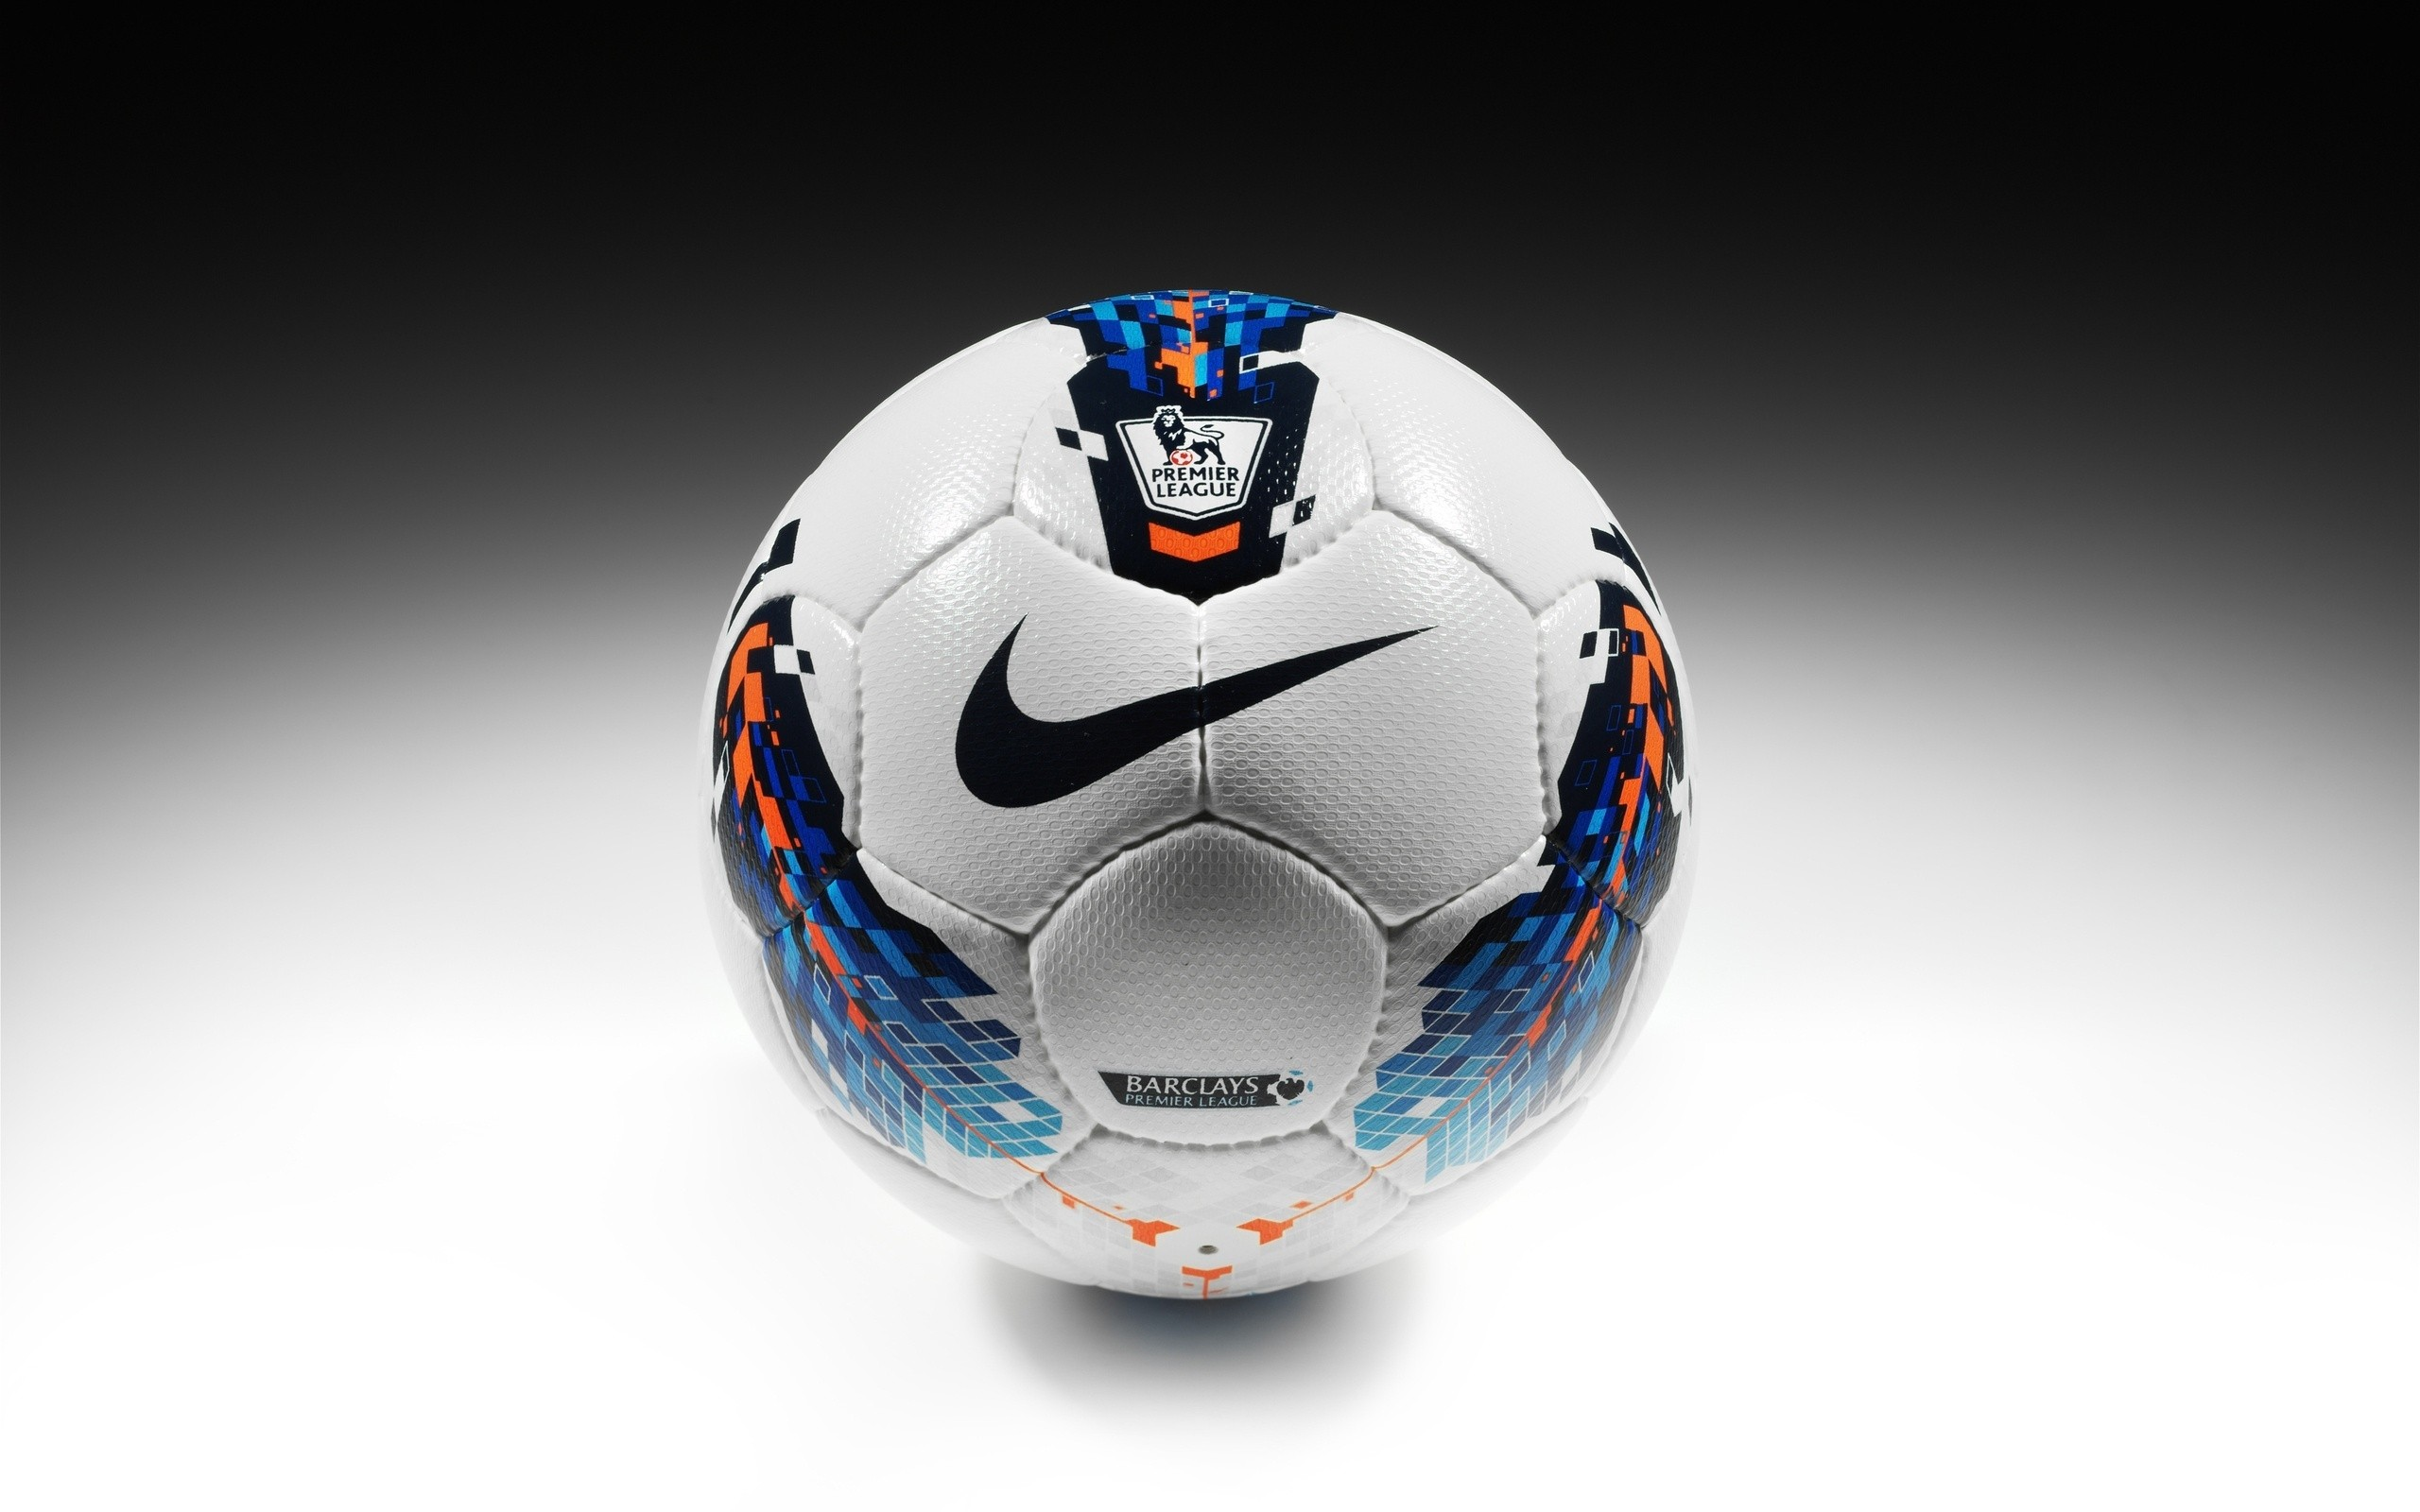 0Premier-League-Ball-Wallpaper-2014-2015